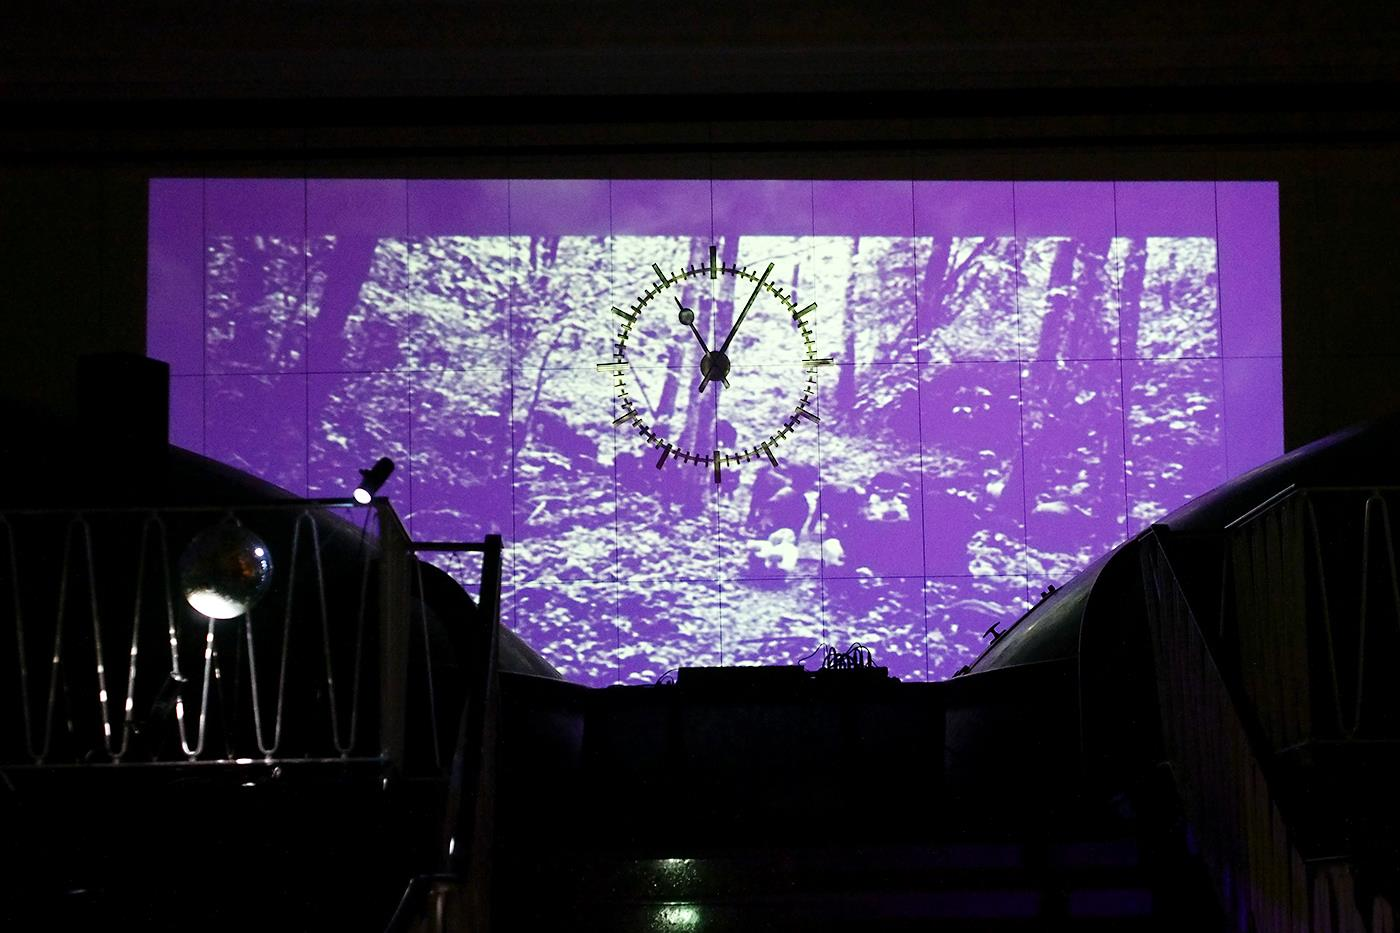 The Seer at The Room of Eyes festival, photography by Flyn Vibert